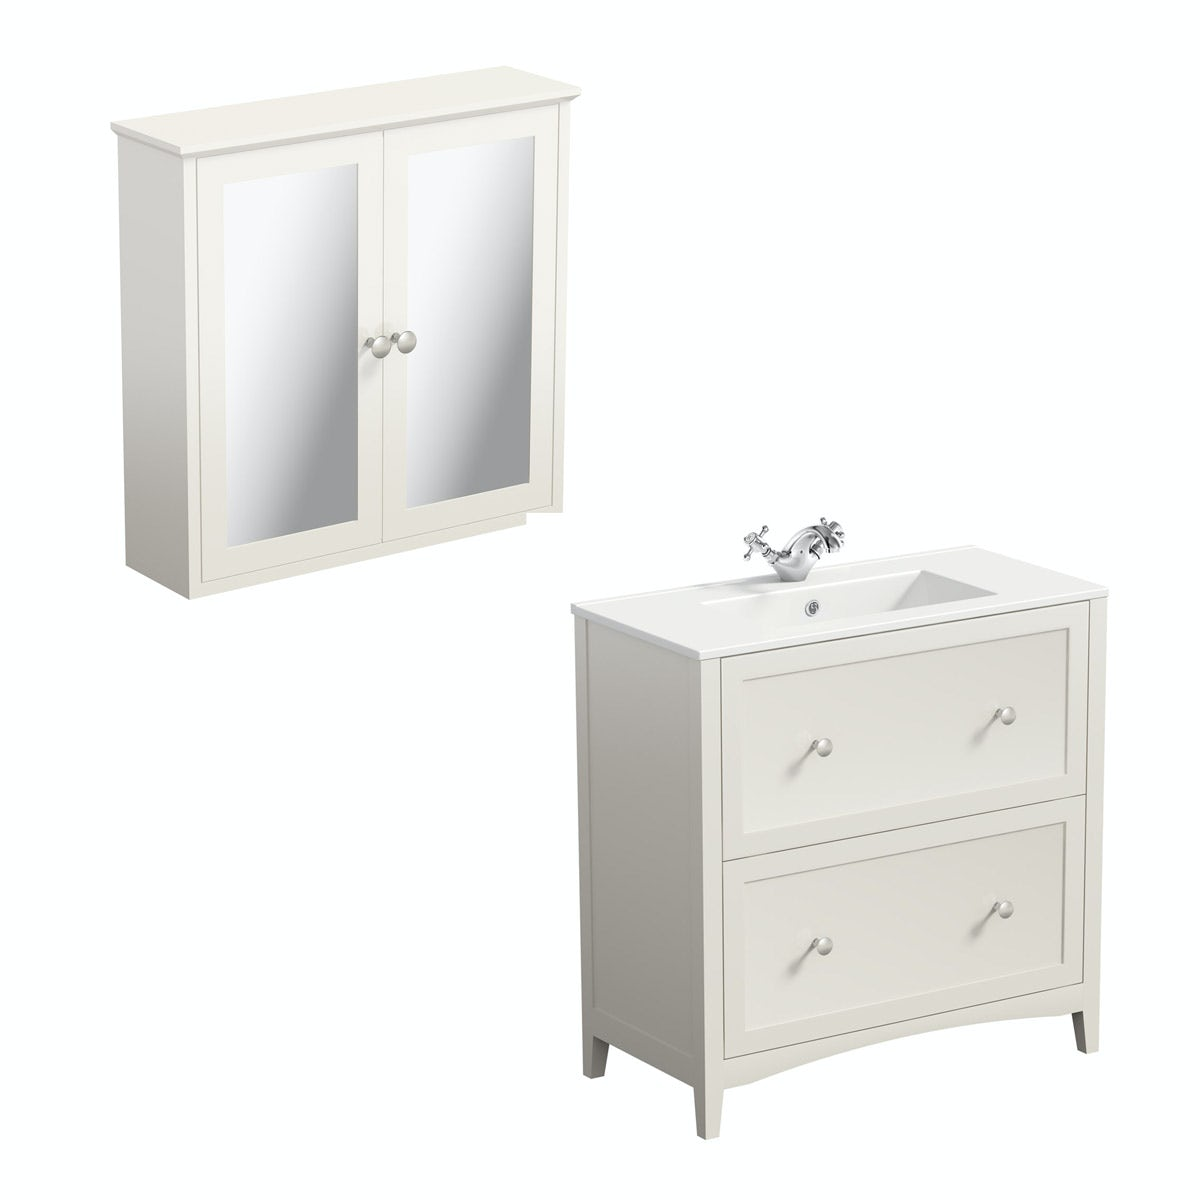 The Bath Co. Camberley satin ivory floor drawer unit with basin 800mm with mirror cabinet